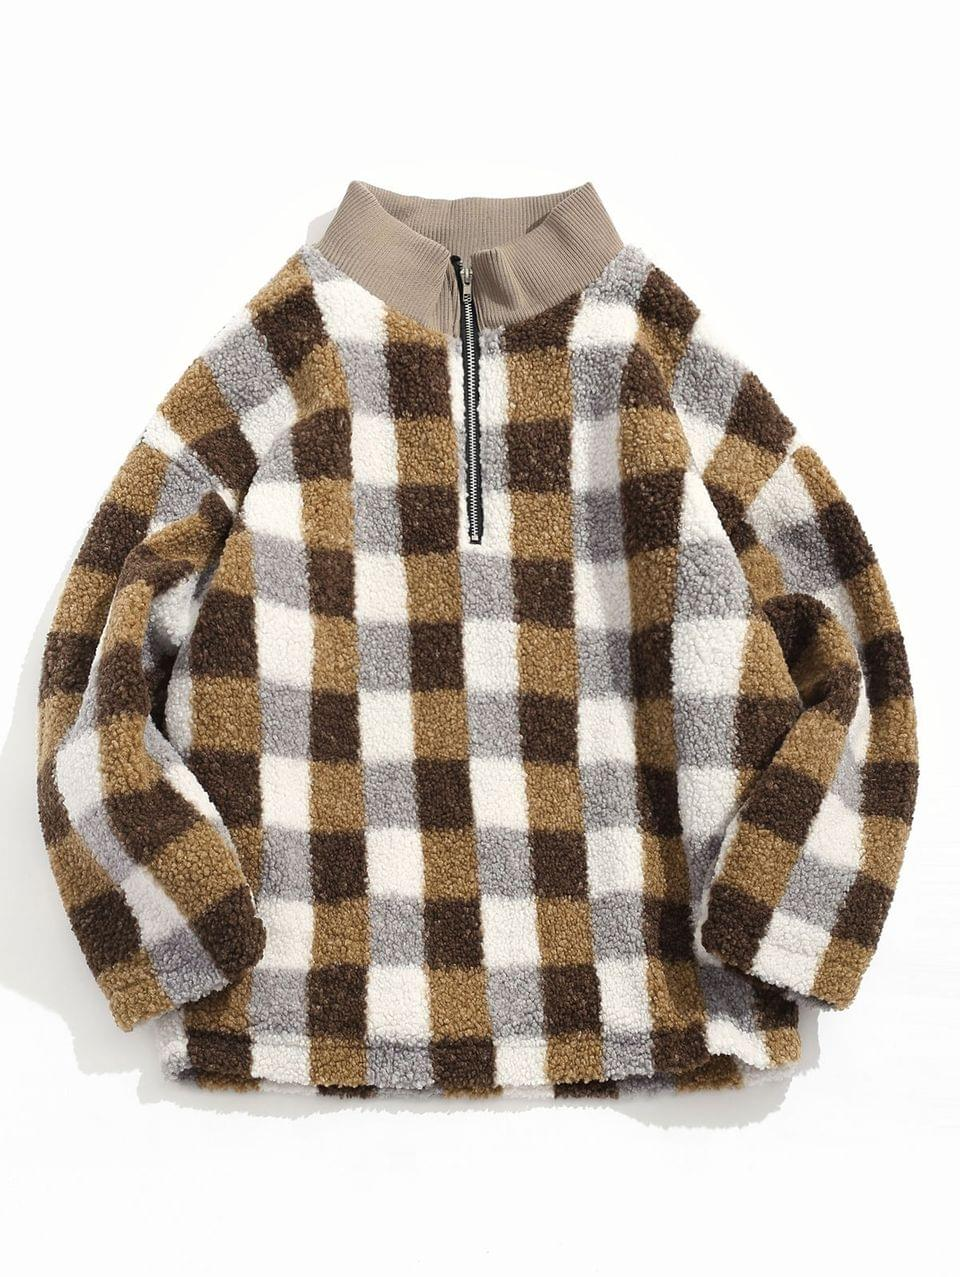 Men's Quarter Zipper Plaid Design Fluffy Jacket - Camel Brown M